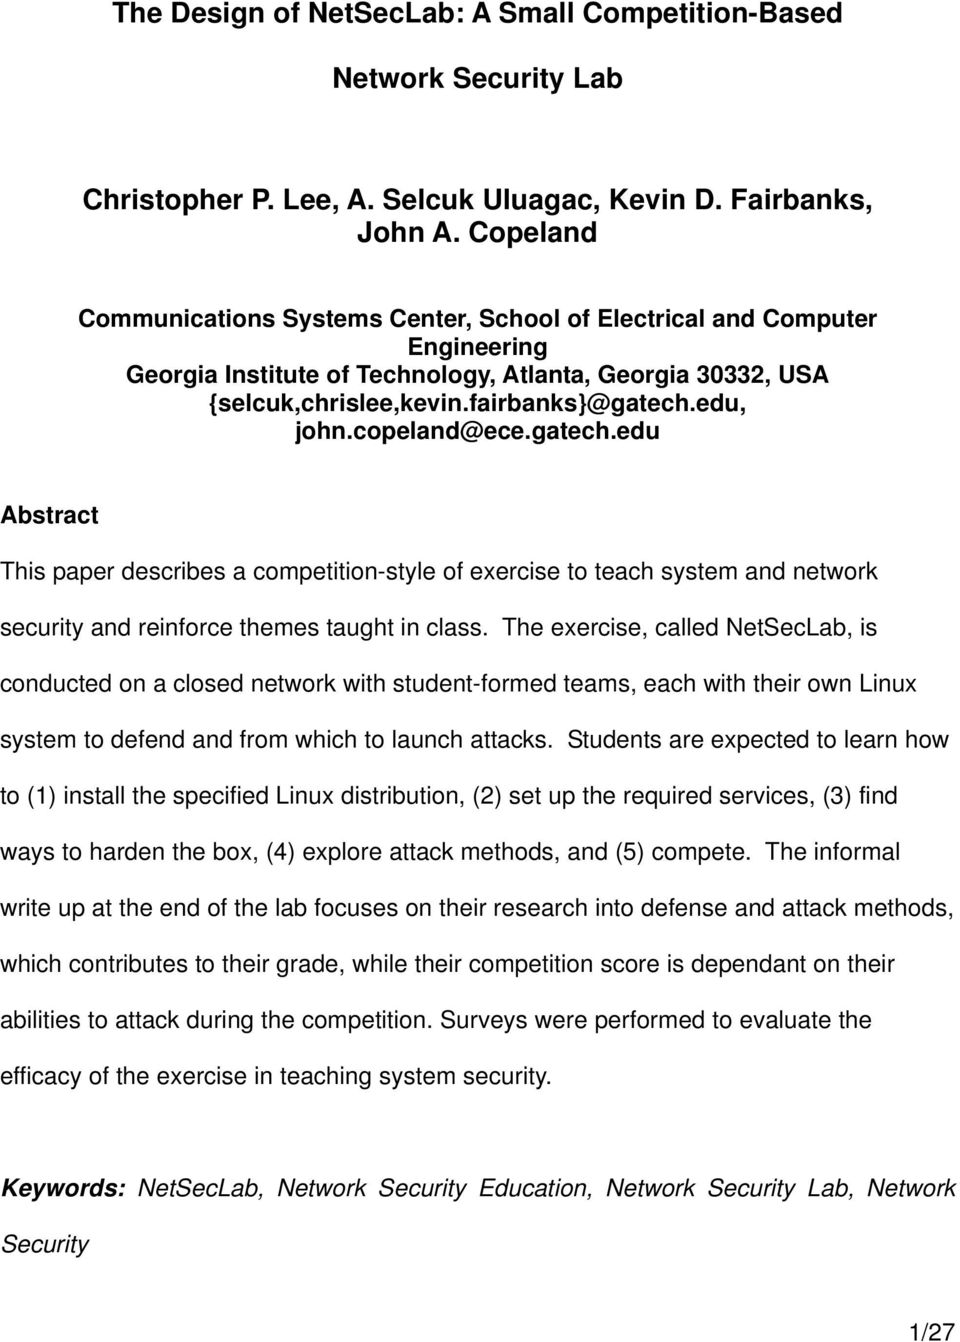 copeland@ece.gatech.edu Abstract This paper describes a competition-style of exercise to teach system and network security and reinforce themes taught in class.